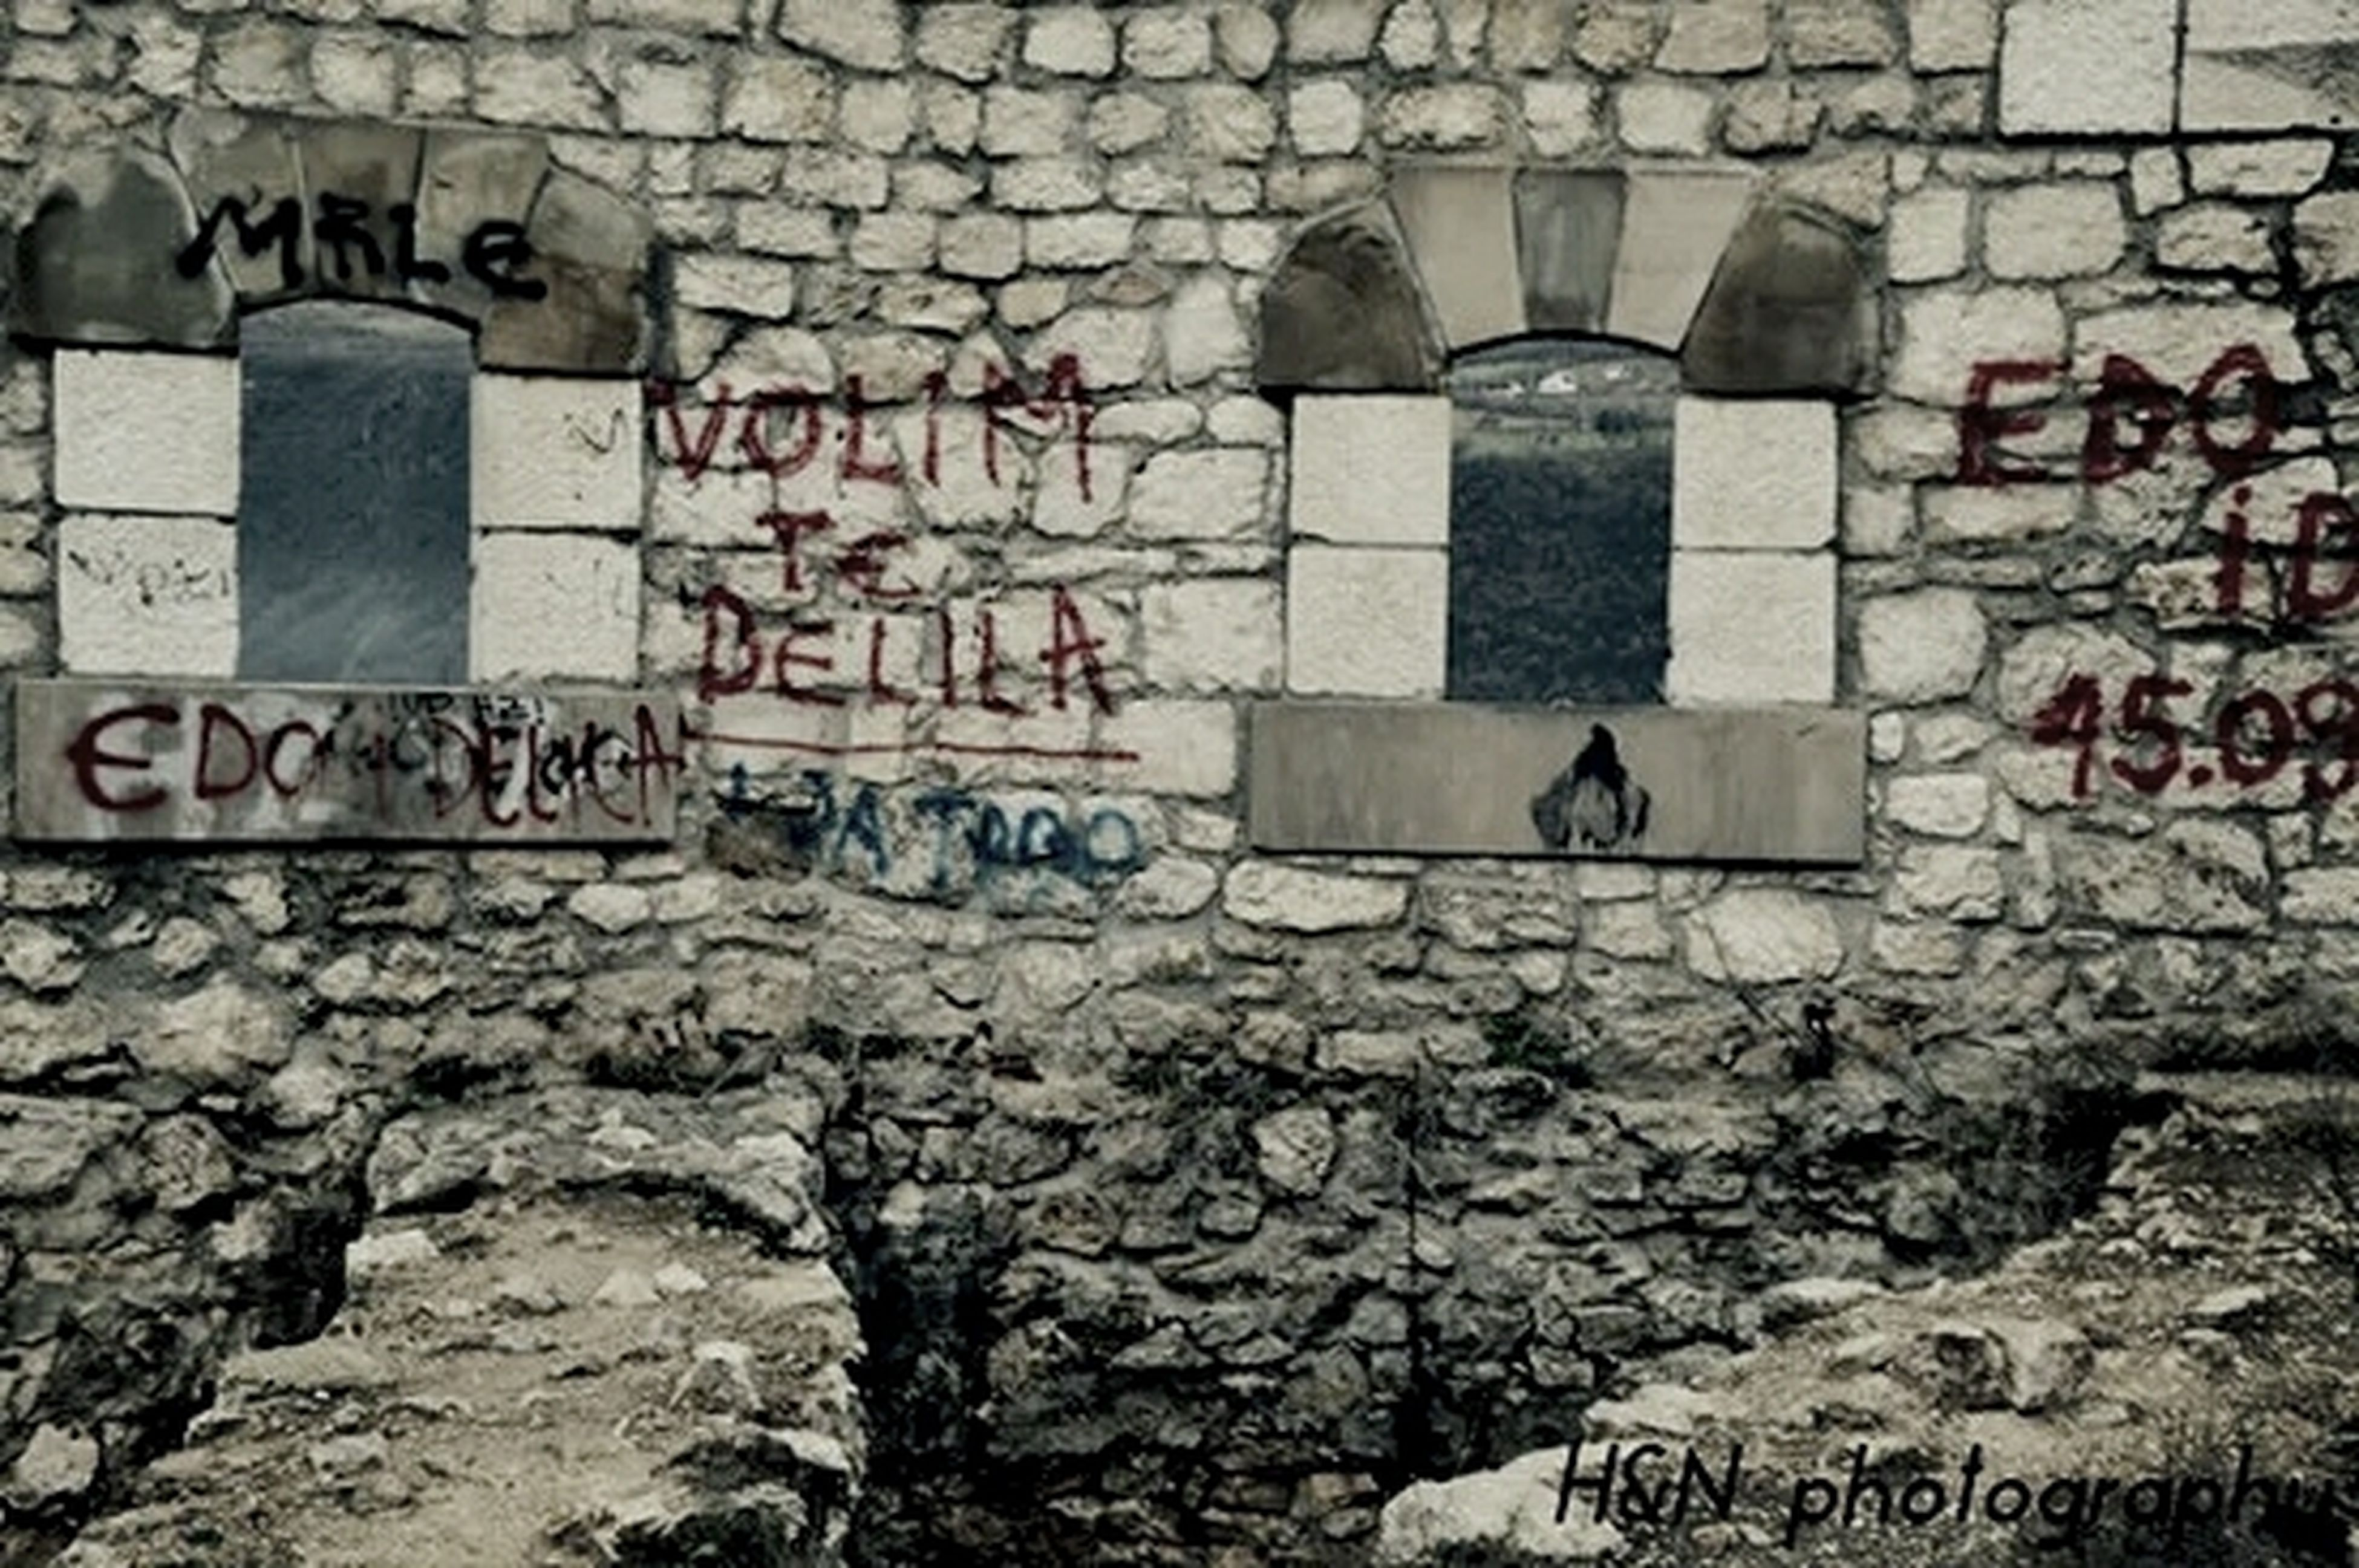 architecture, built structure, wall - building feature, building exterior, text, brick wall, graffiti, stone wall, old, western script, communication, wall, history, weathered, abandoned, damaged, day, obsolete, outdoors, deterioration